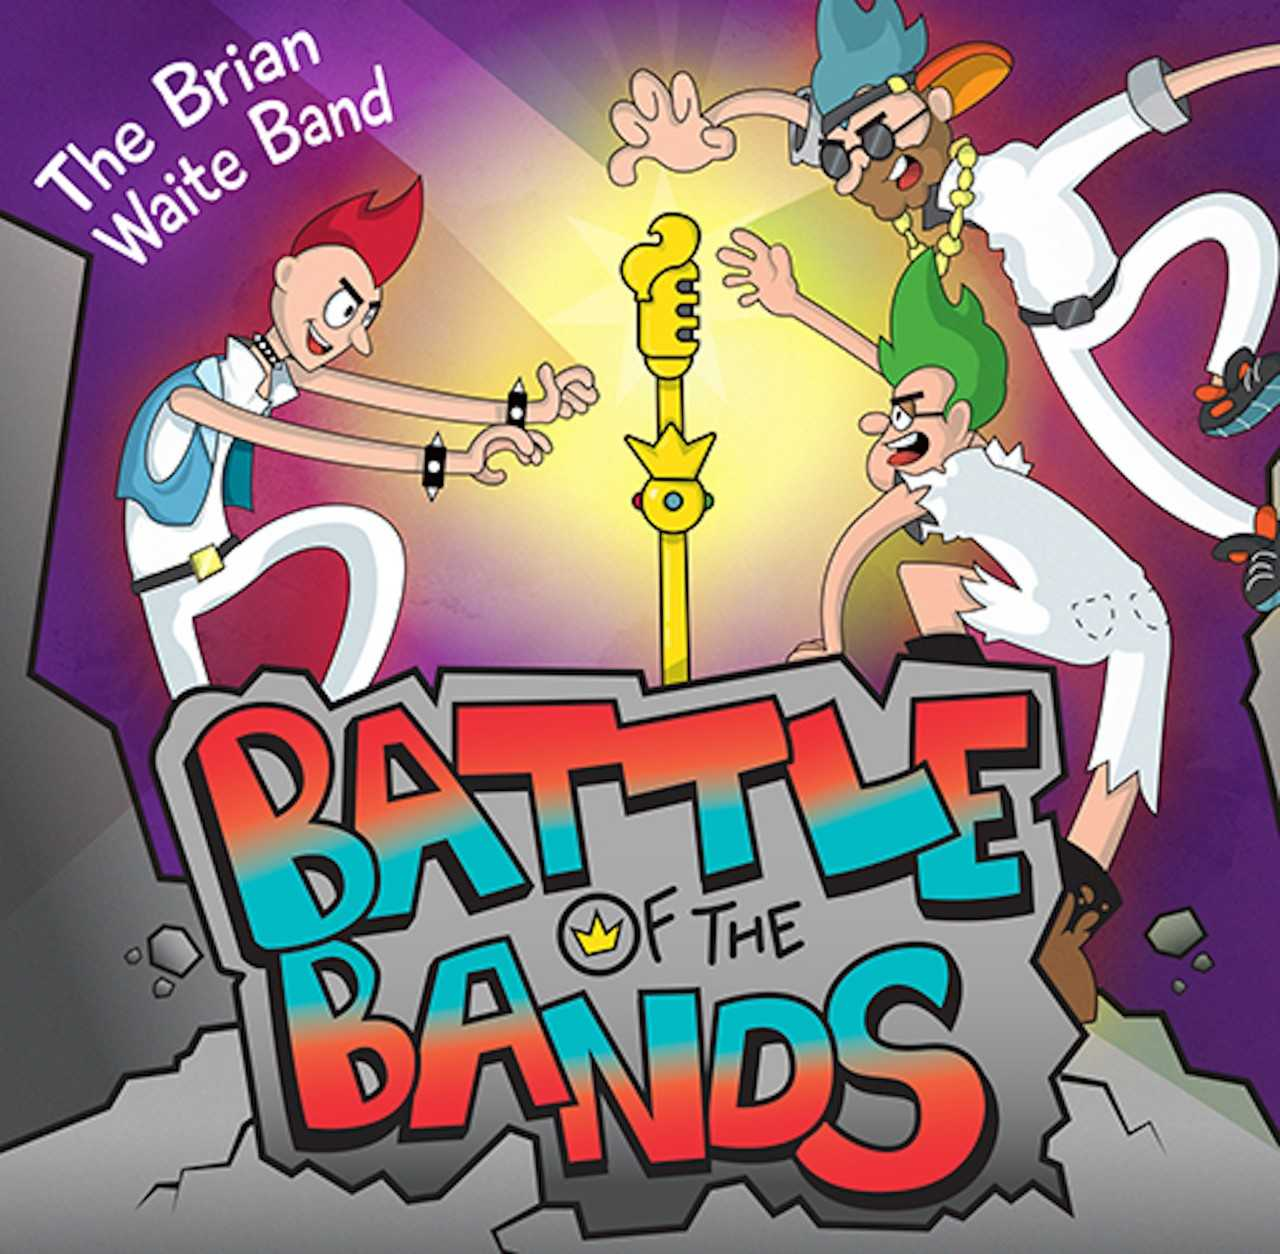 """Brian Waite Band's """"Battle of the Bands"""" Family Musical Adventure"""